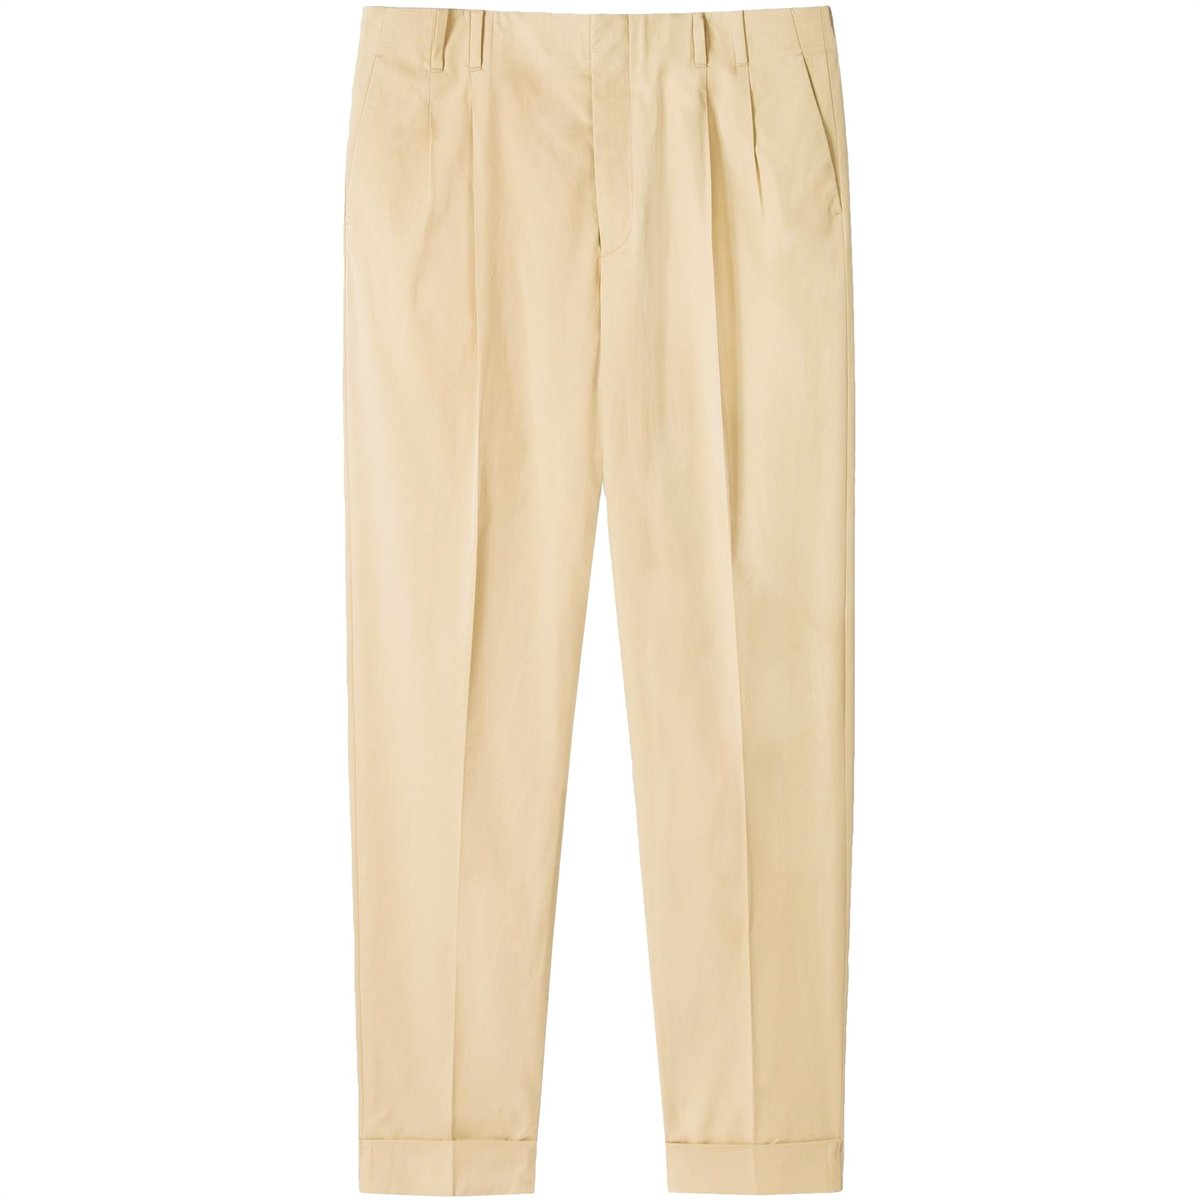 paul-smith-sand-Tapered-fit-Sand-Double-pleated-Cotton-Pants.jpg